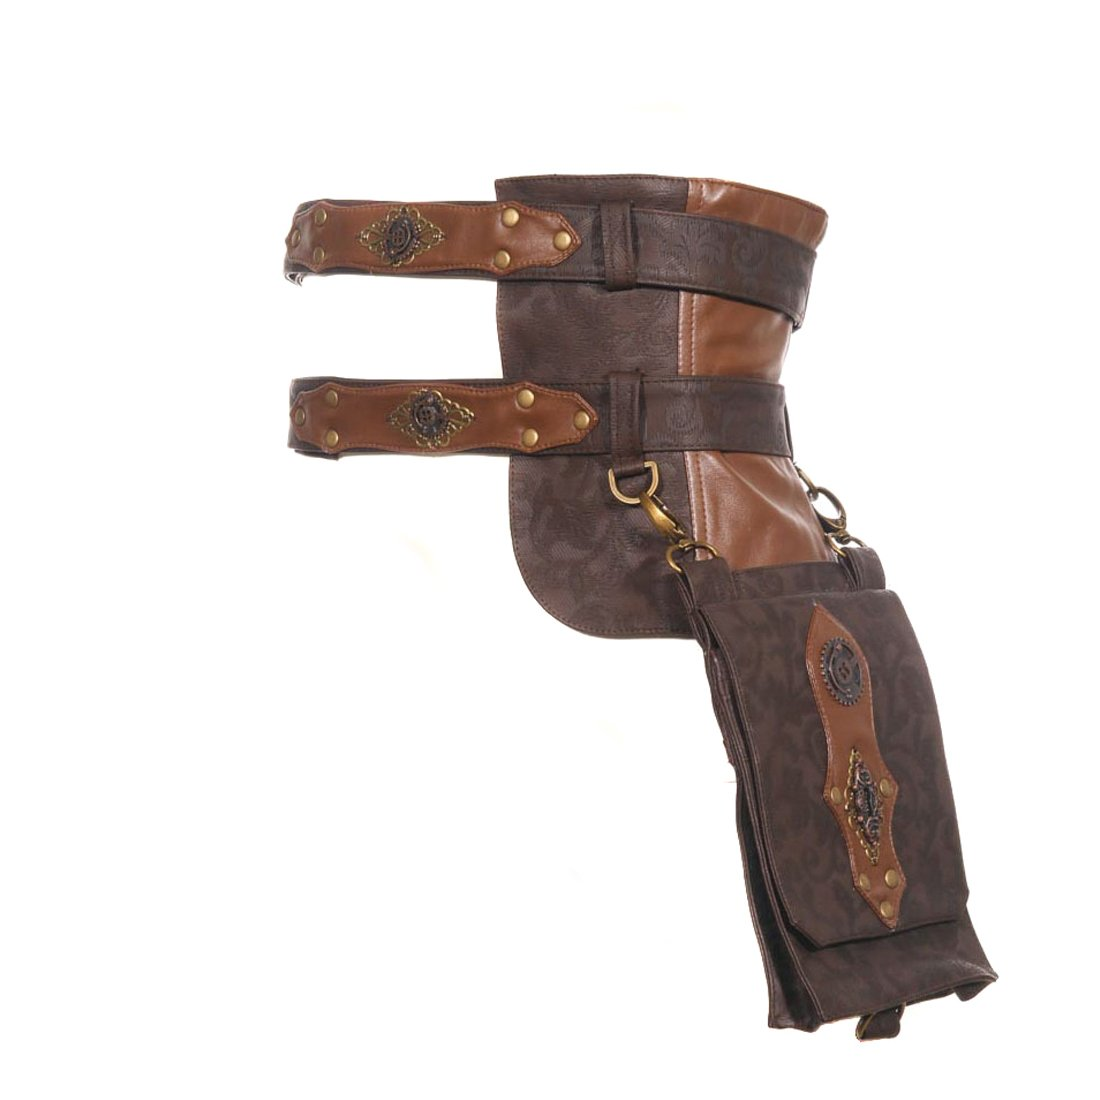 Steampunk Cosplay Steam Punk Clothing Leather Utility Belt Girls Messenger Bags